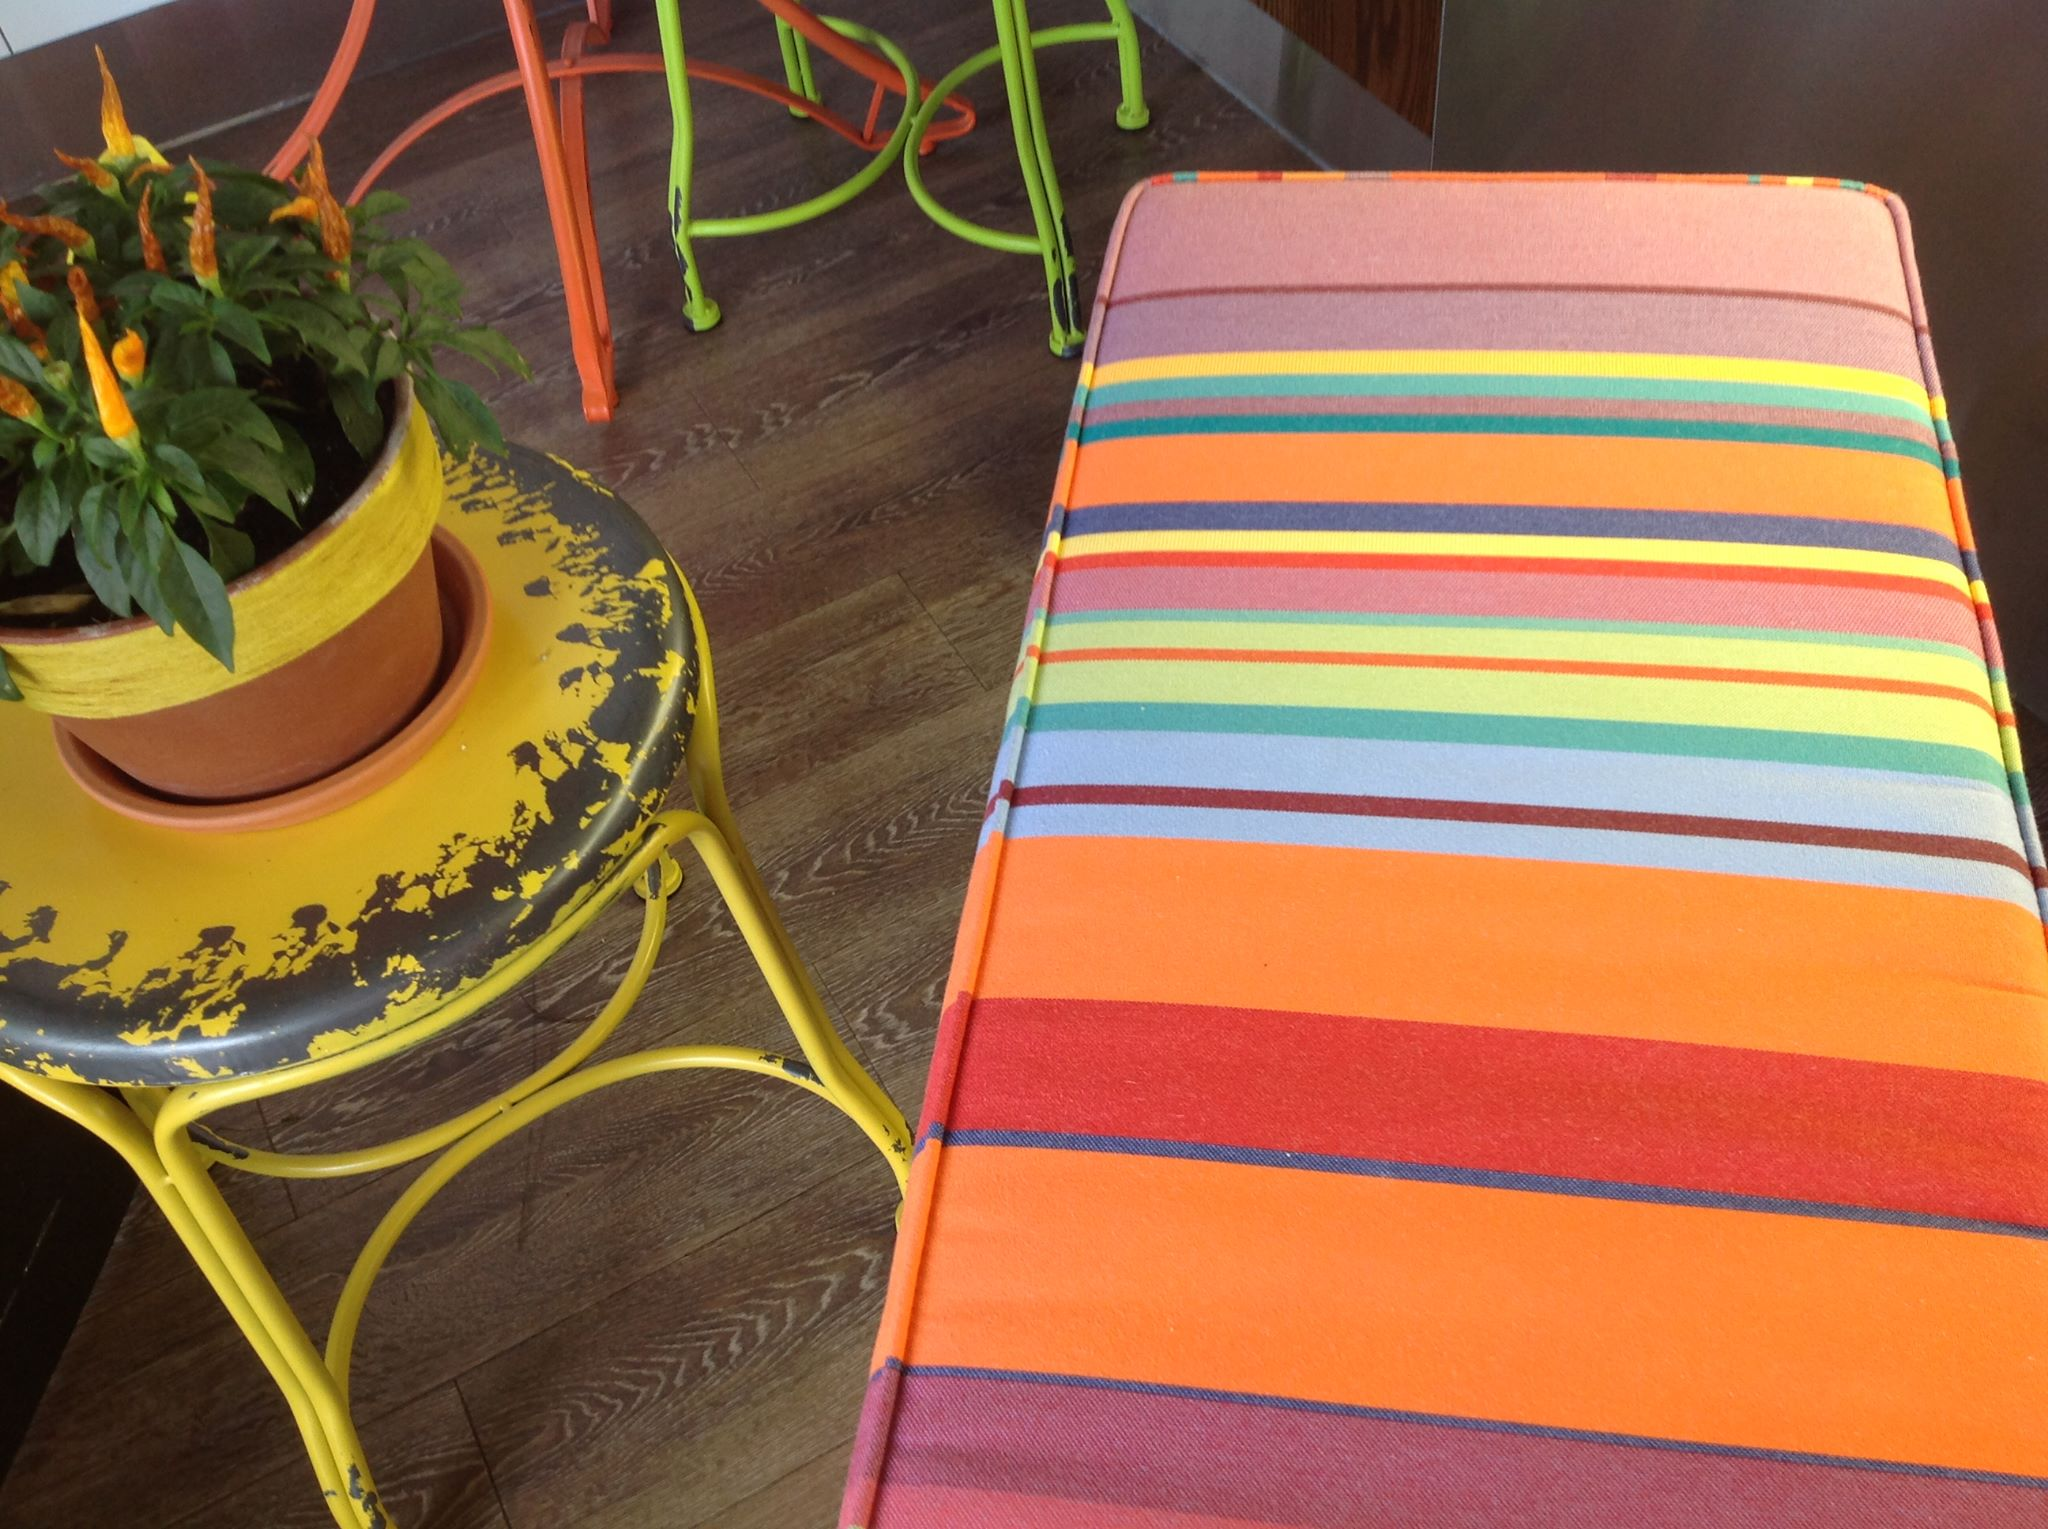 donu0027t you love these bench seat cushions in ici et la stripe we made for amazing new foodstore simply baked in railway walk